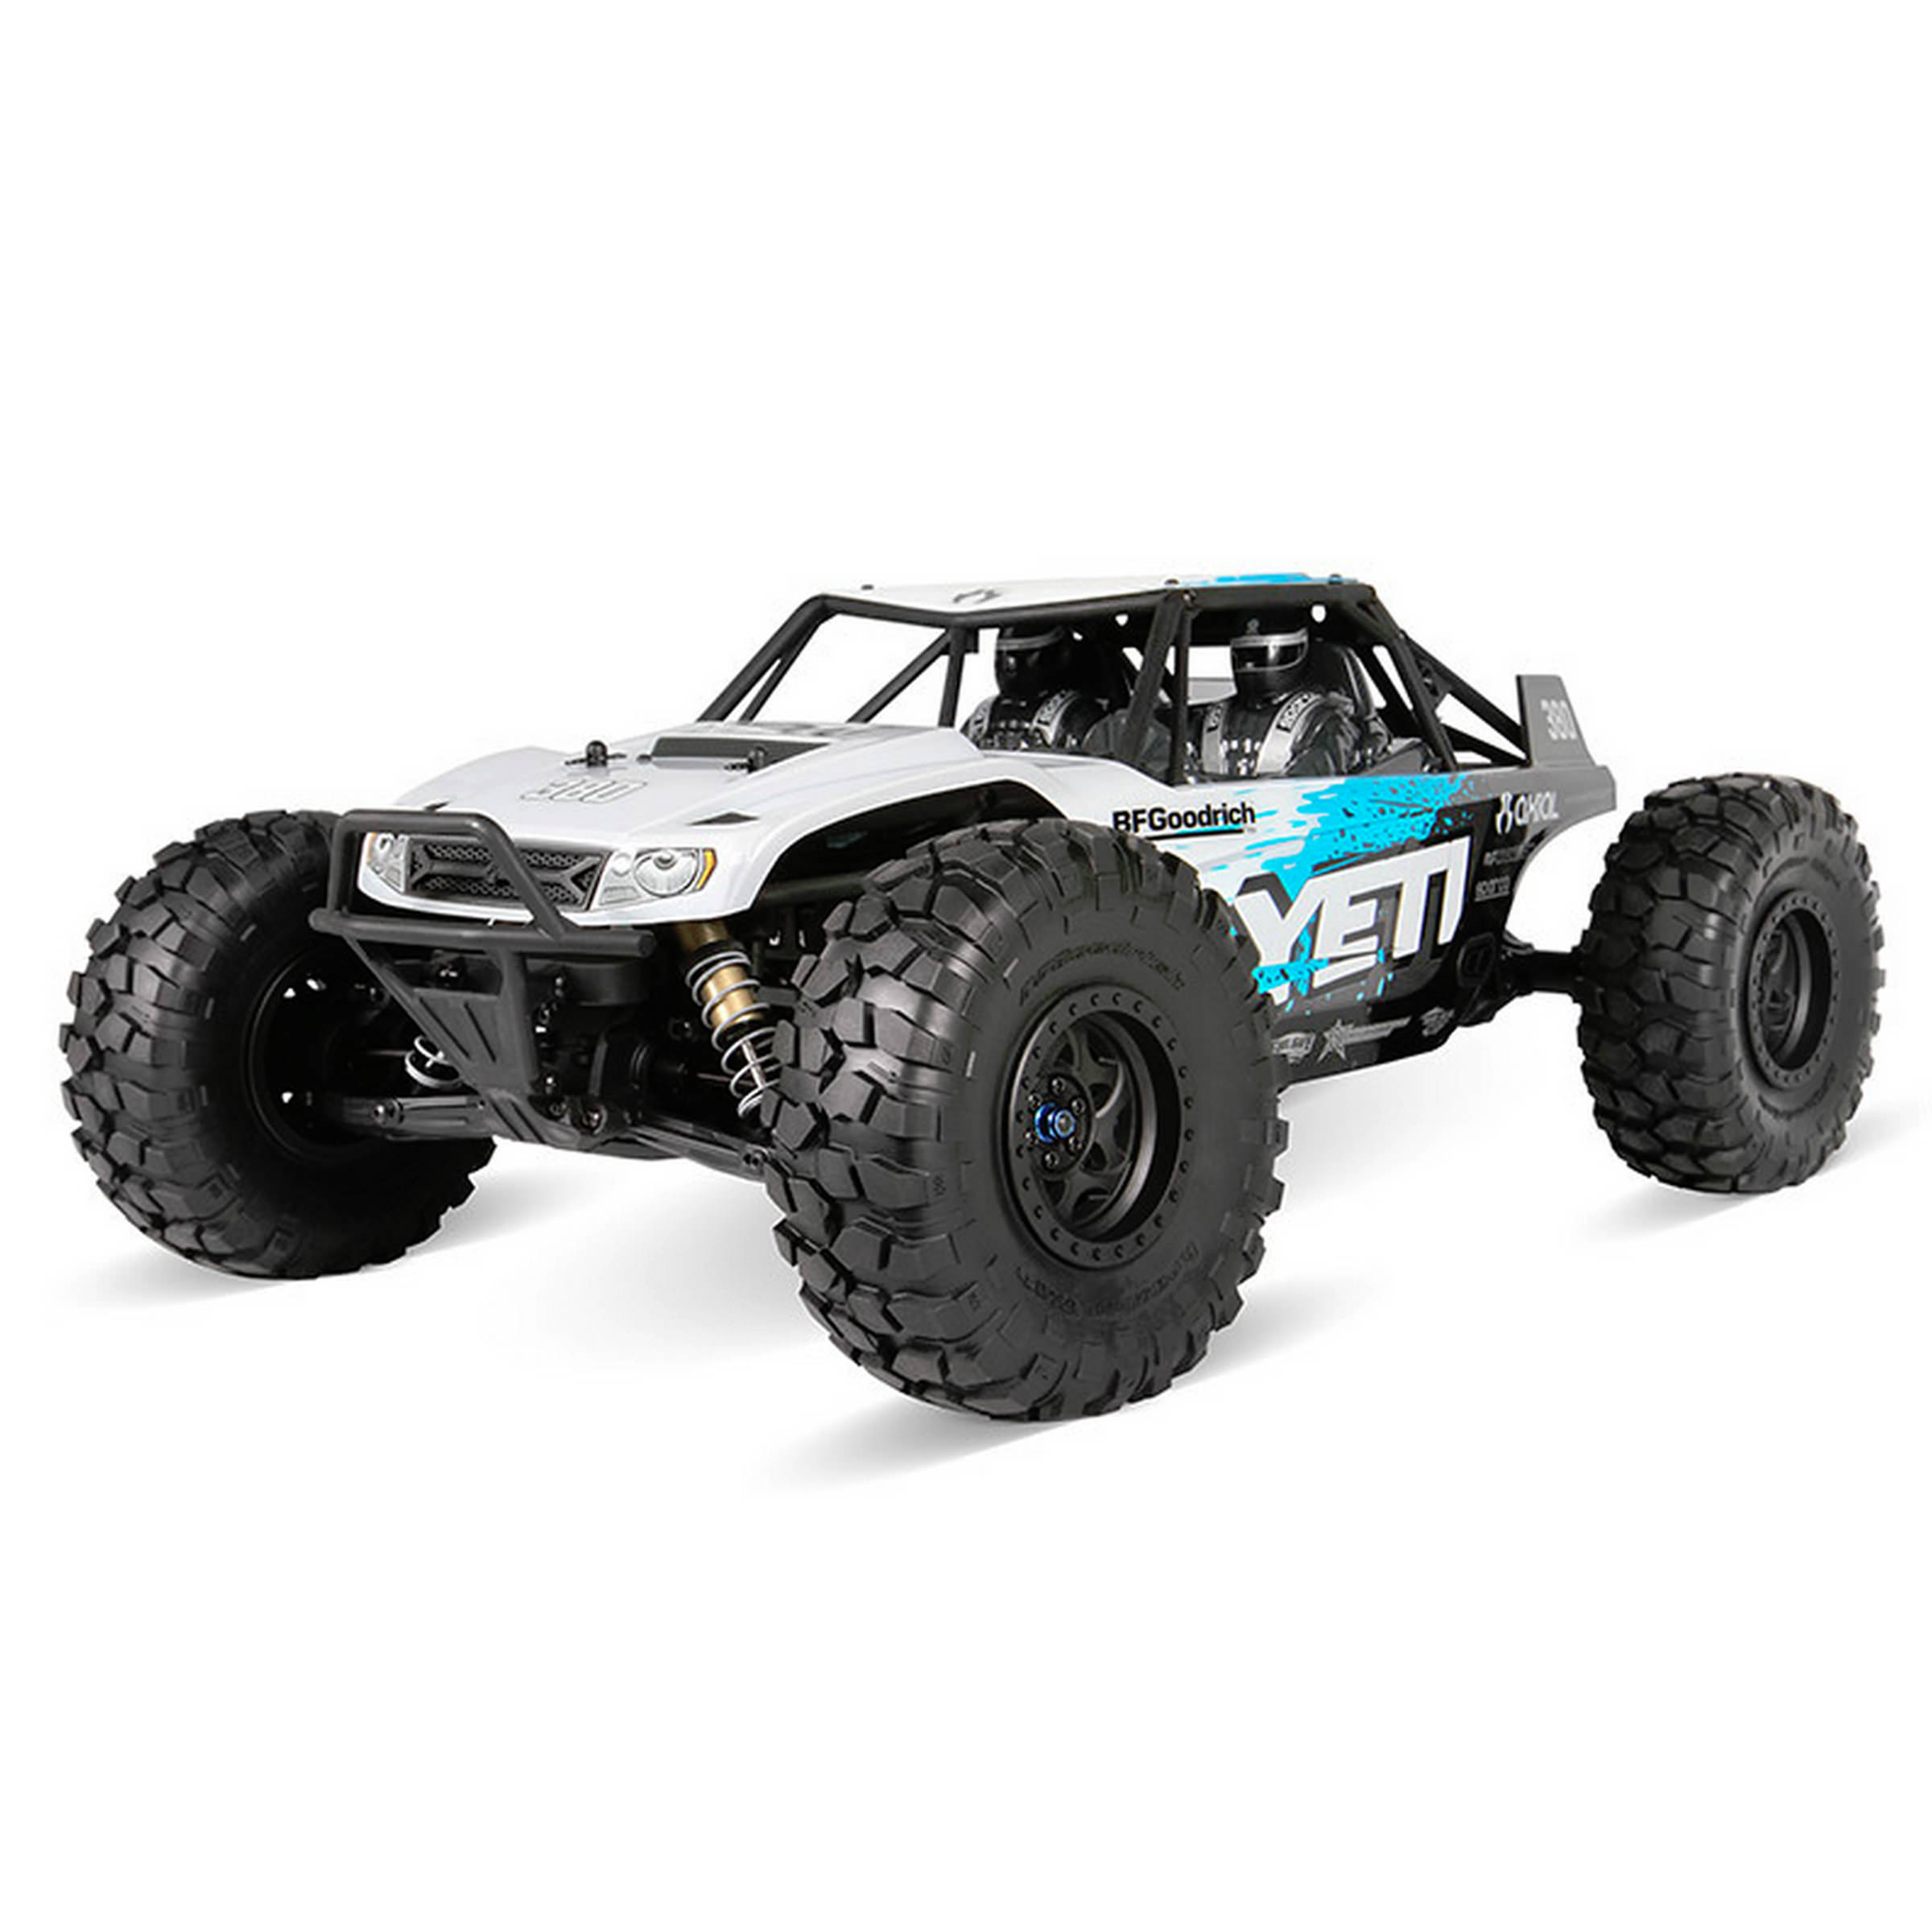 Axial R C : Axial yeti rock racer rc truck at hobby warehouse